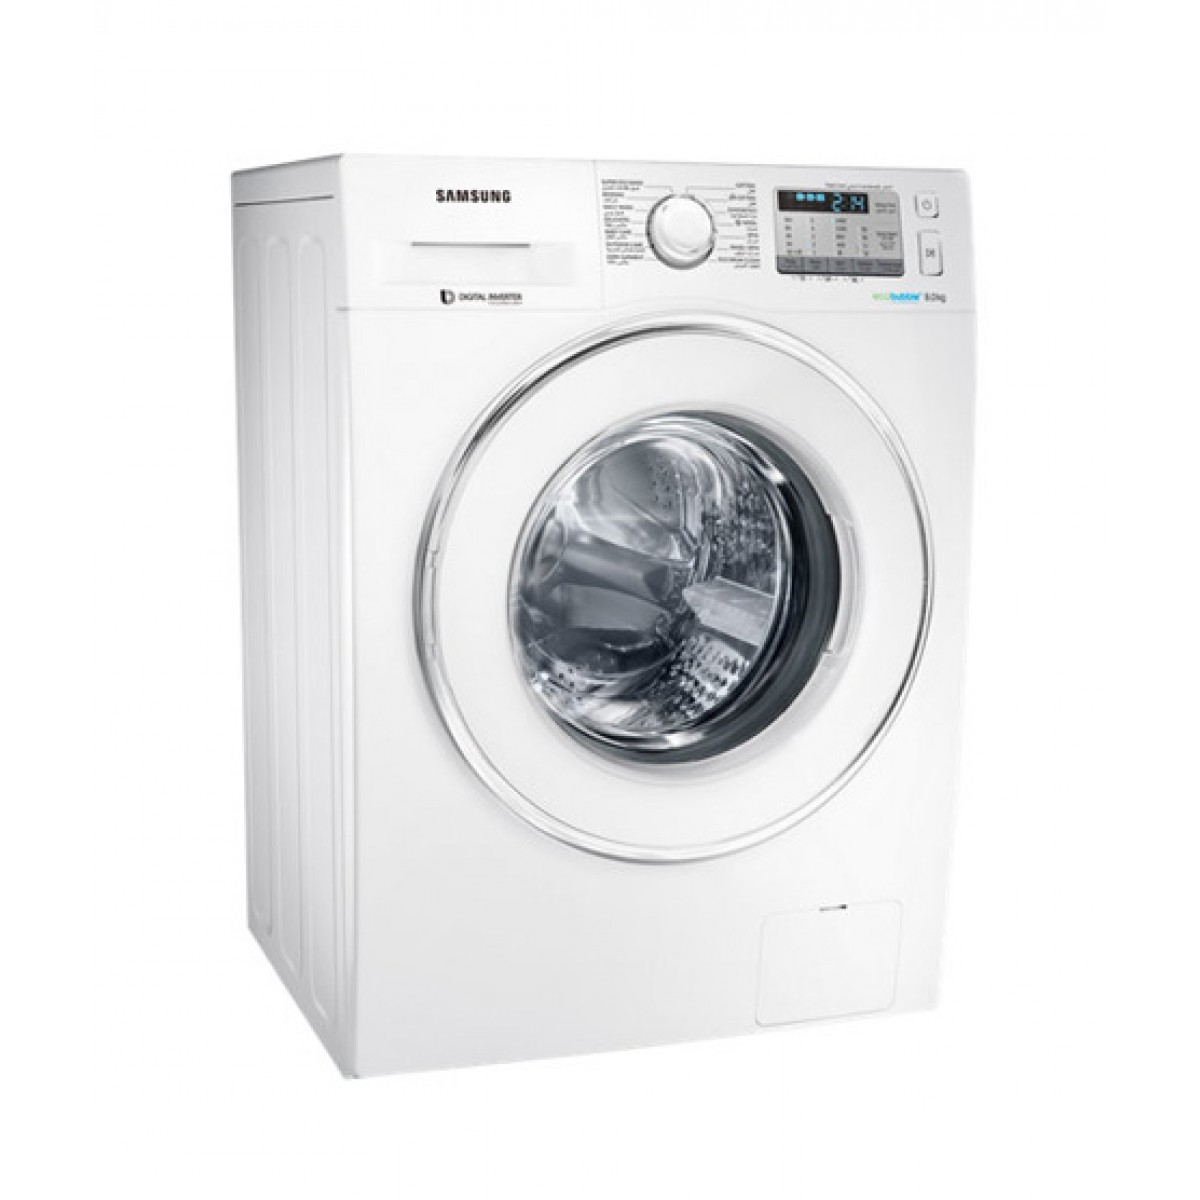 Samsung Fully Automatic Washing Machine Price In Pakistan Buy Samsung Top Load Washing Machine 15 Kg Wa15f7s4uwa Ishopping Pk